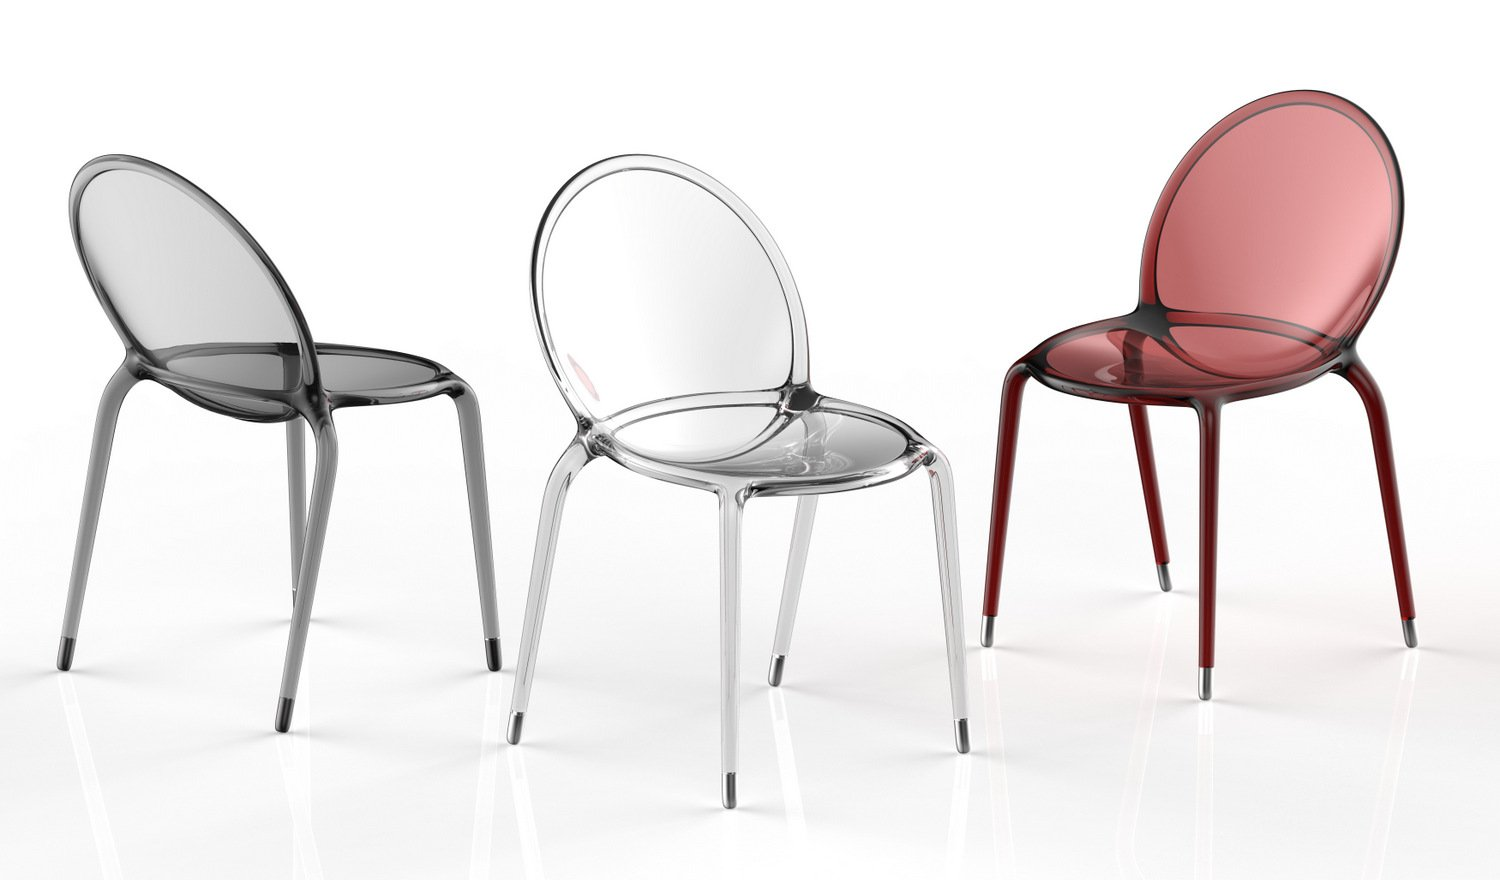 Chaise empilable en polycarbonate loop by roche bobois design c dric ragot - Chaise polycarbonate italie ...